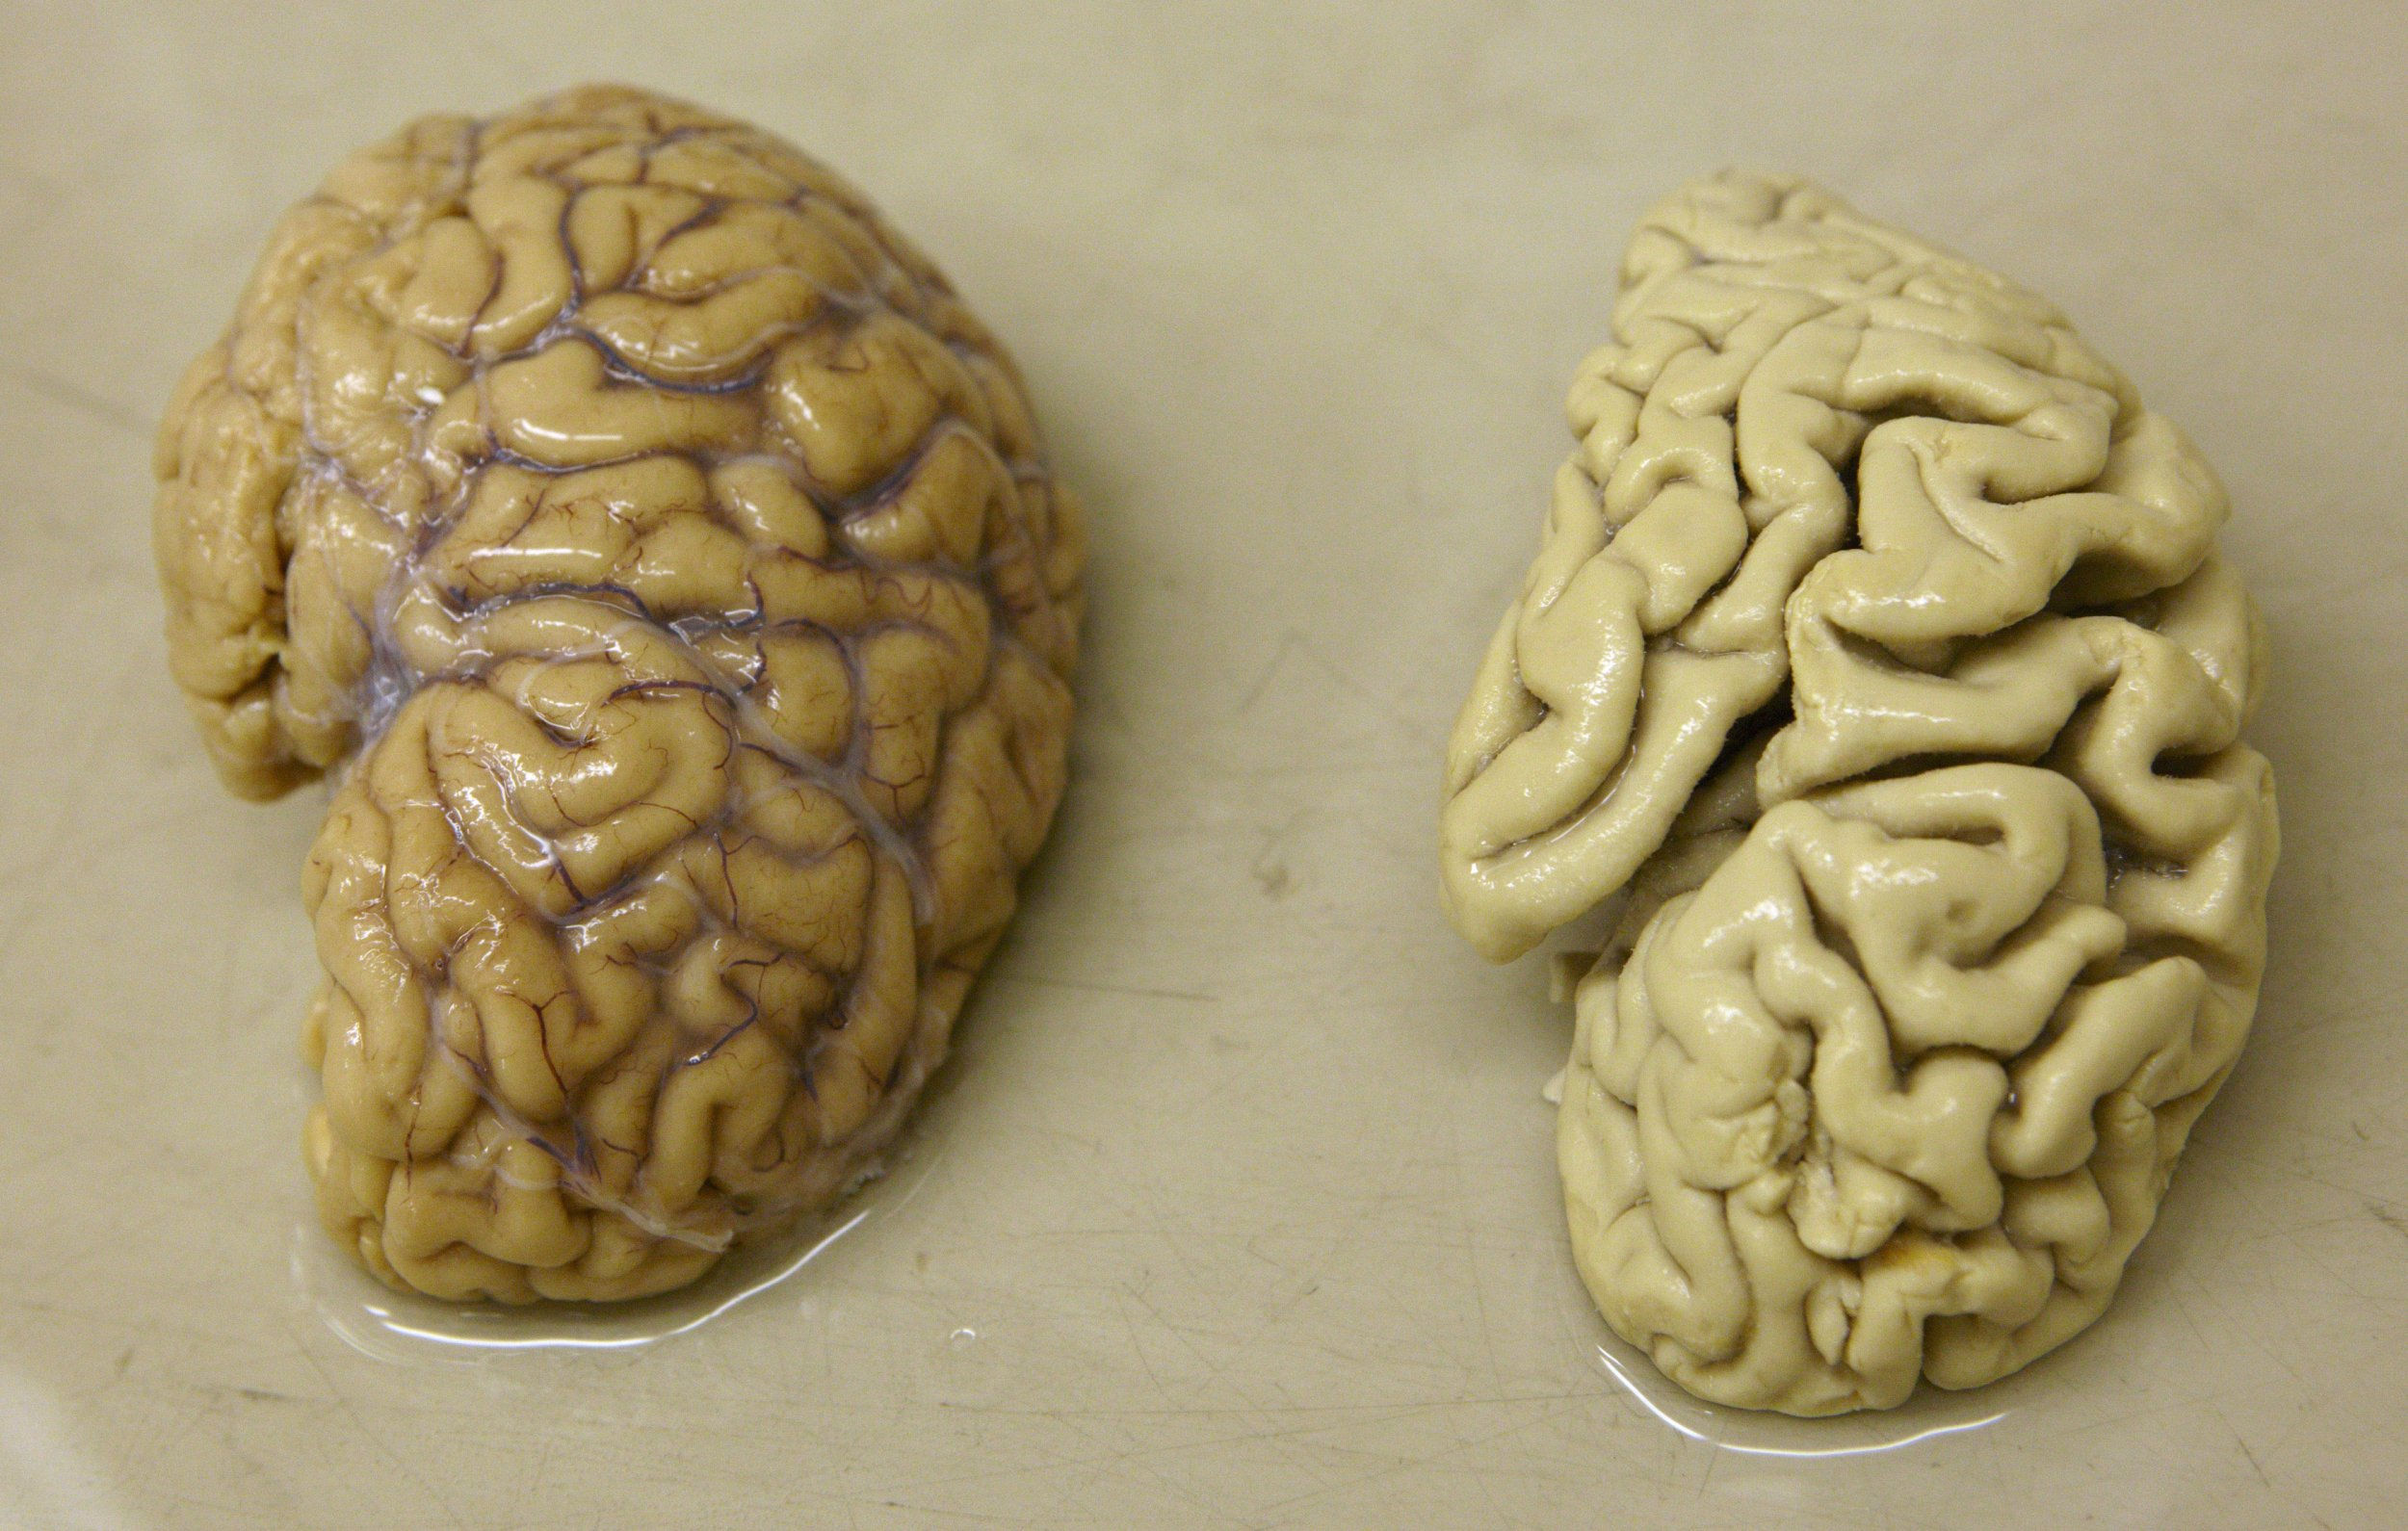 New Drug Shows Promise for Early-Stage Alzheimer's